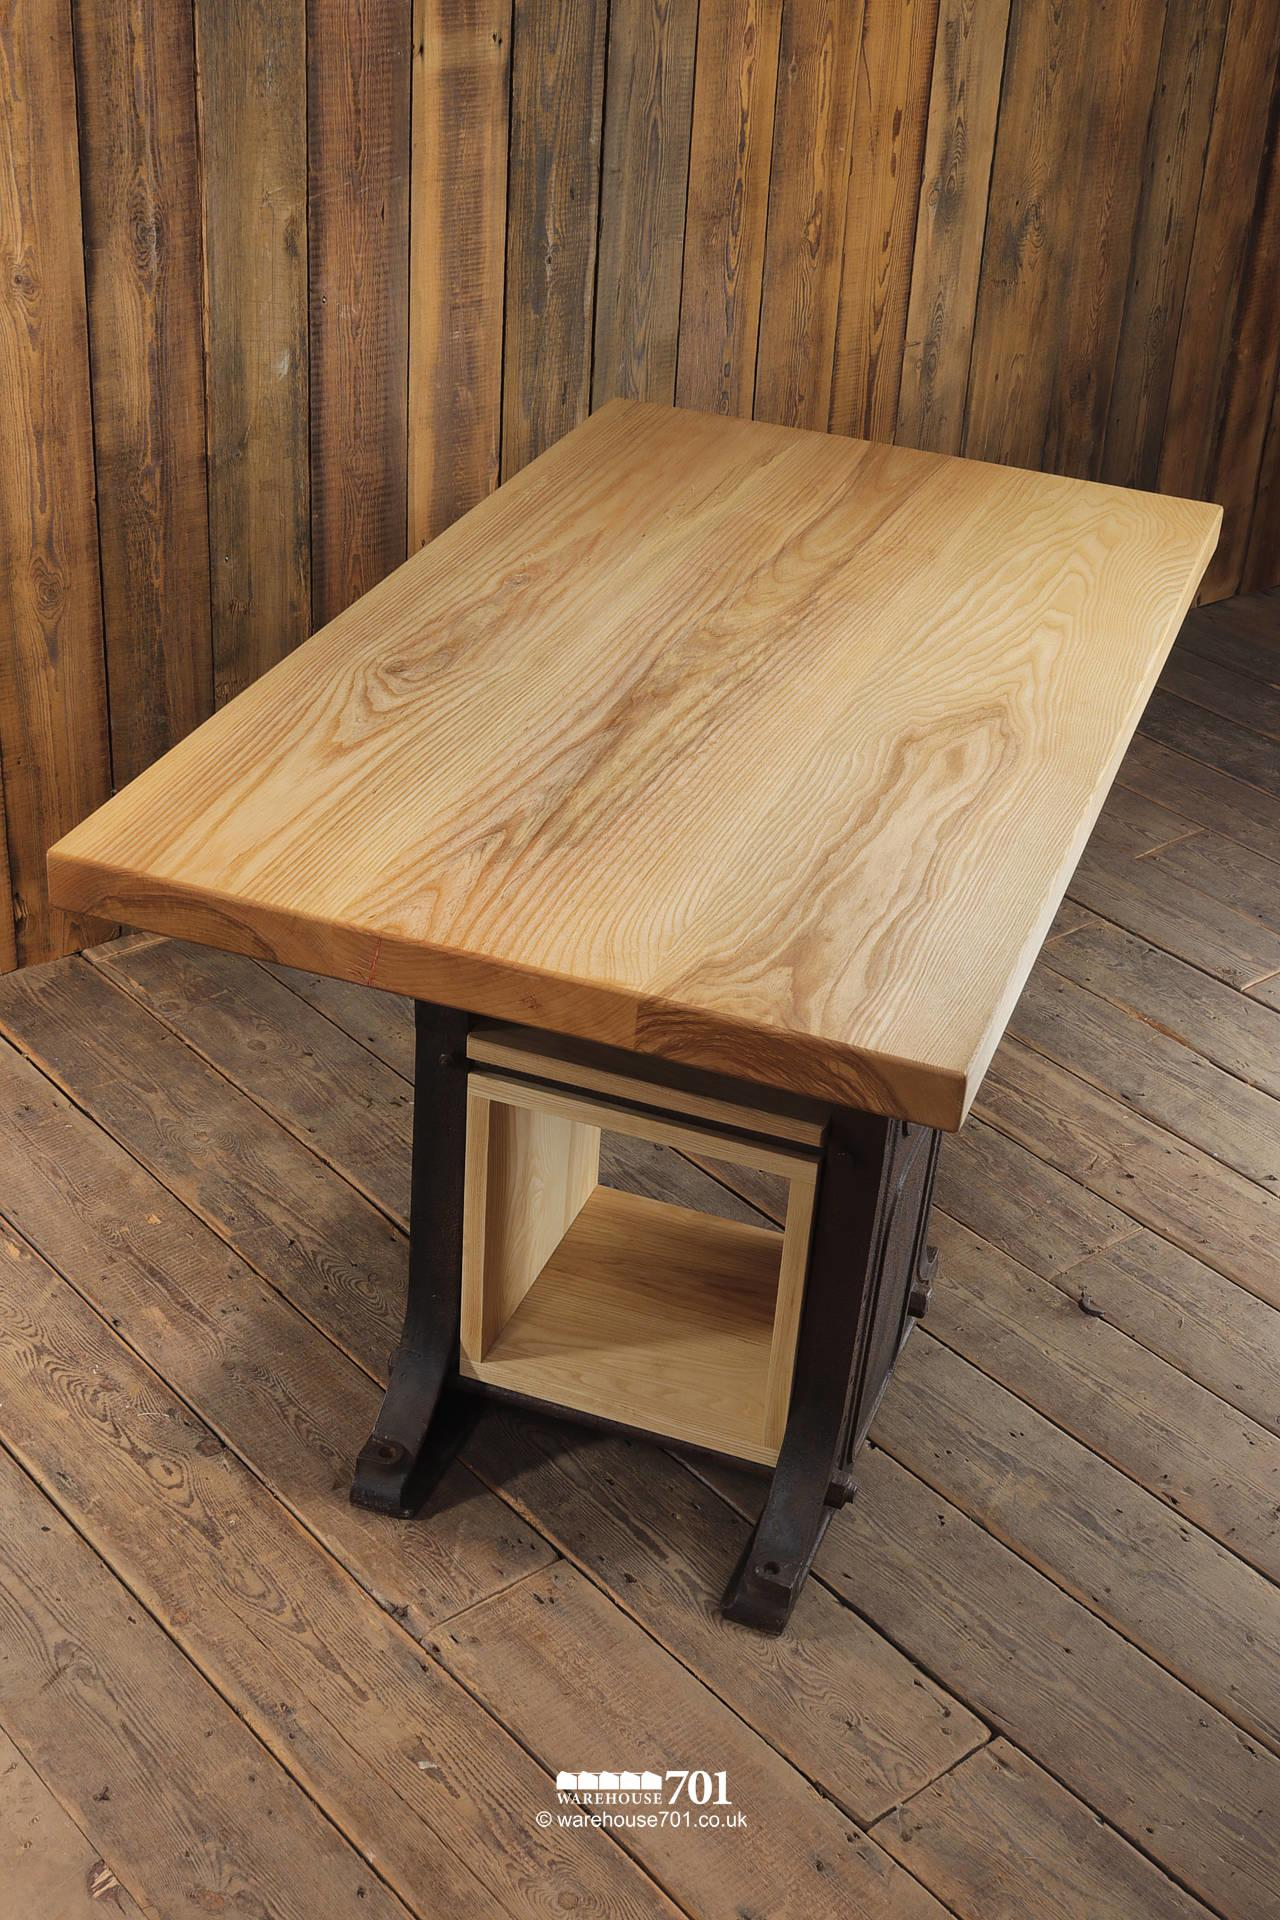 701 Original Industrial Base Highly Figured American Ash Table with Storage #5